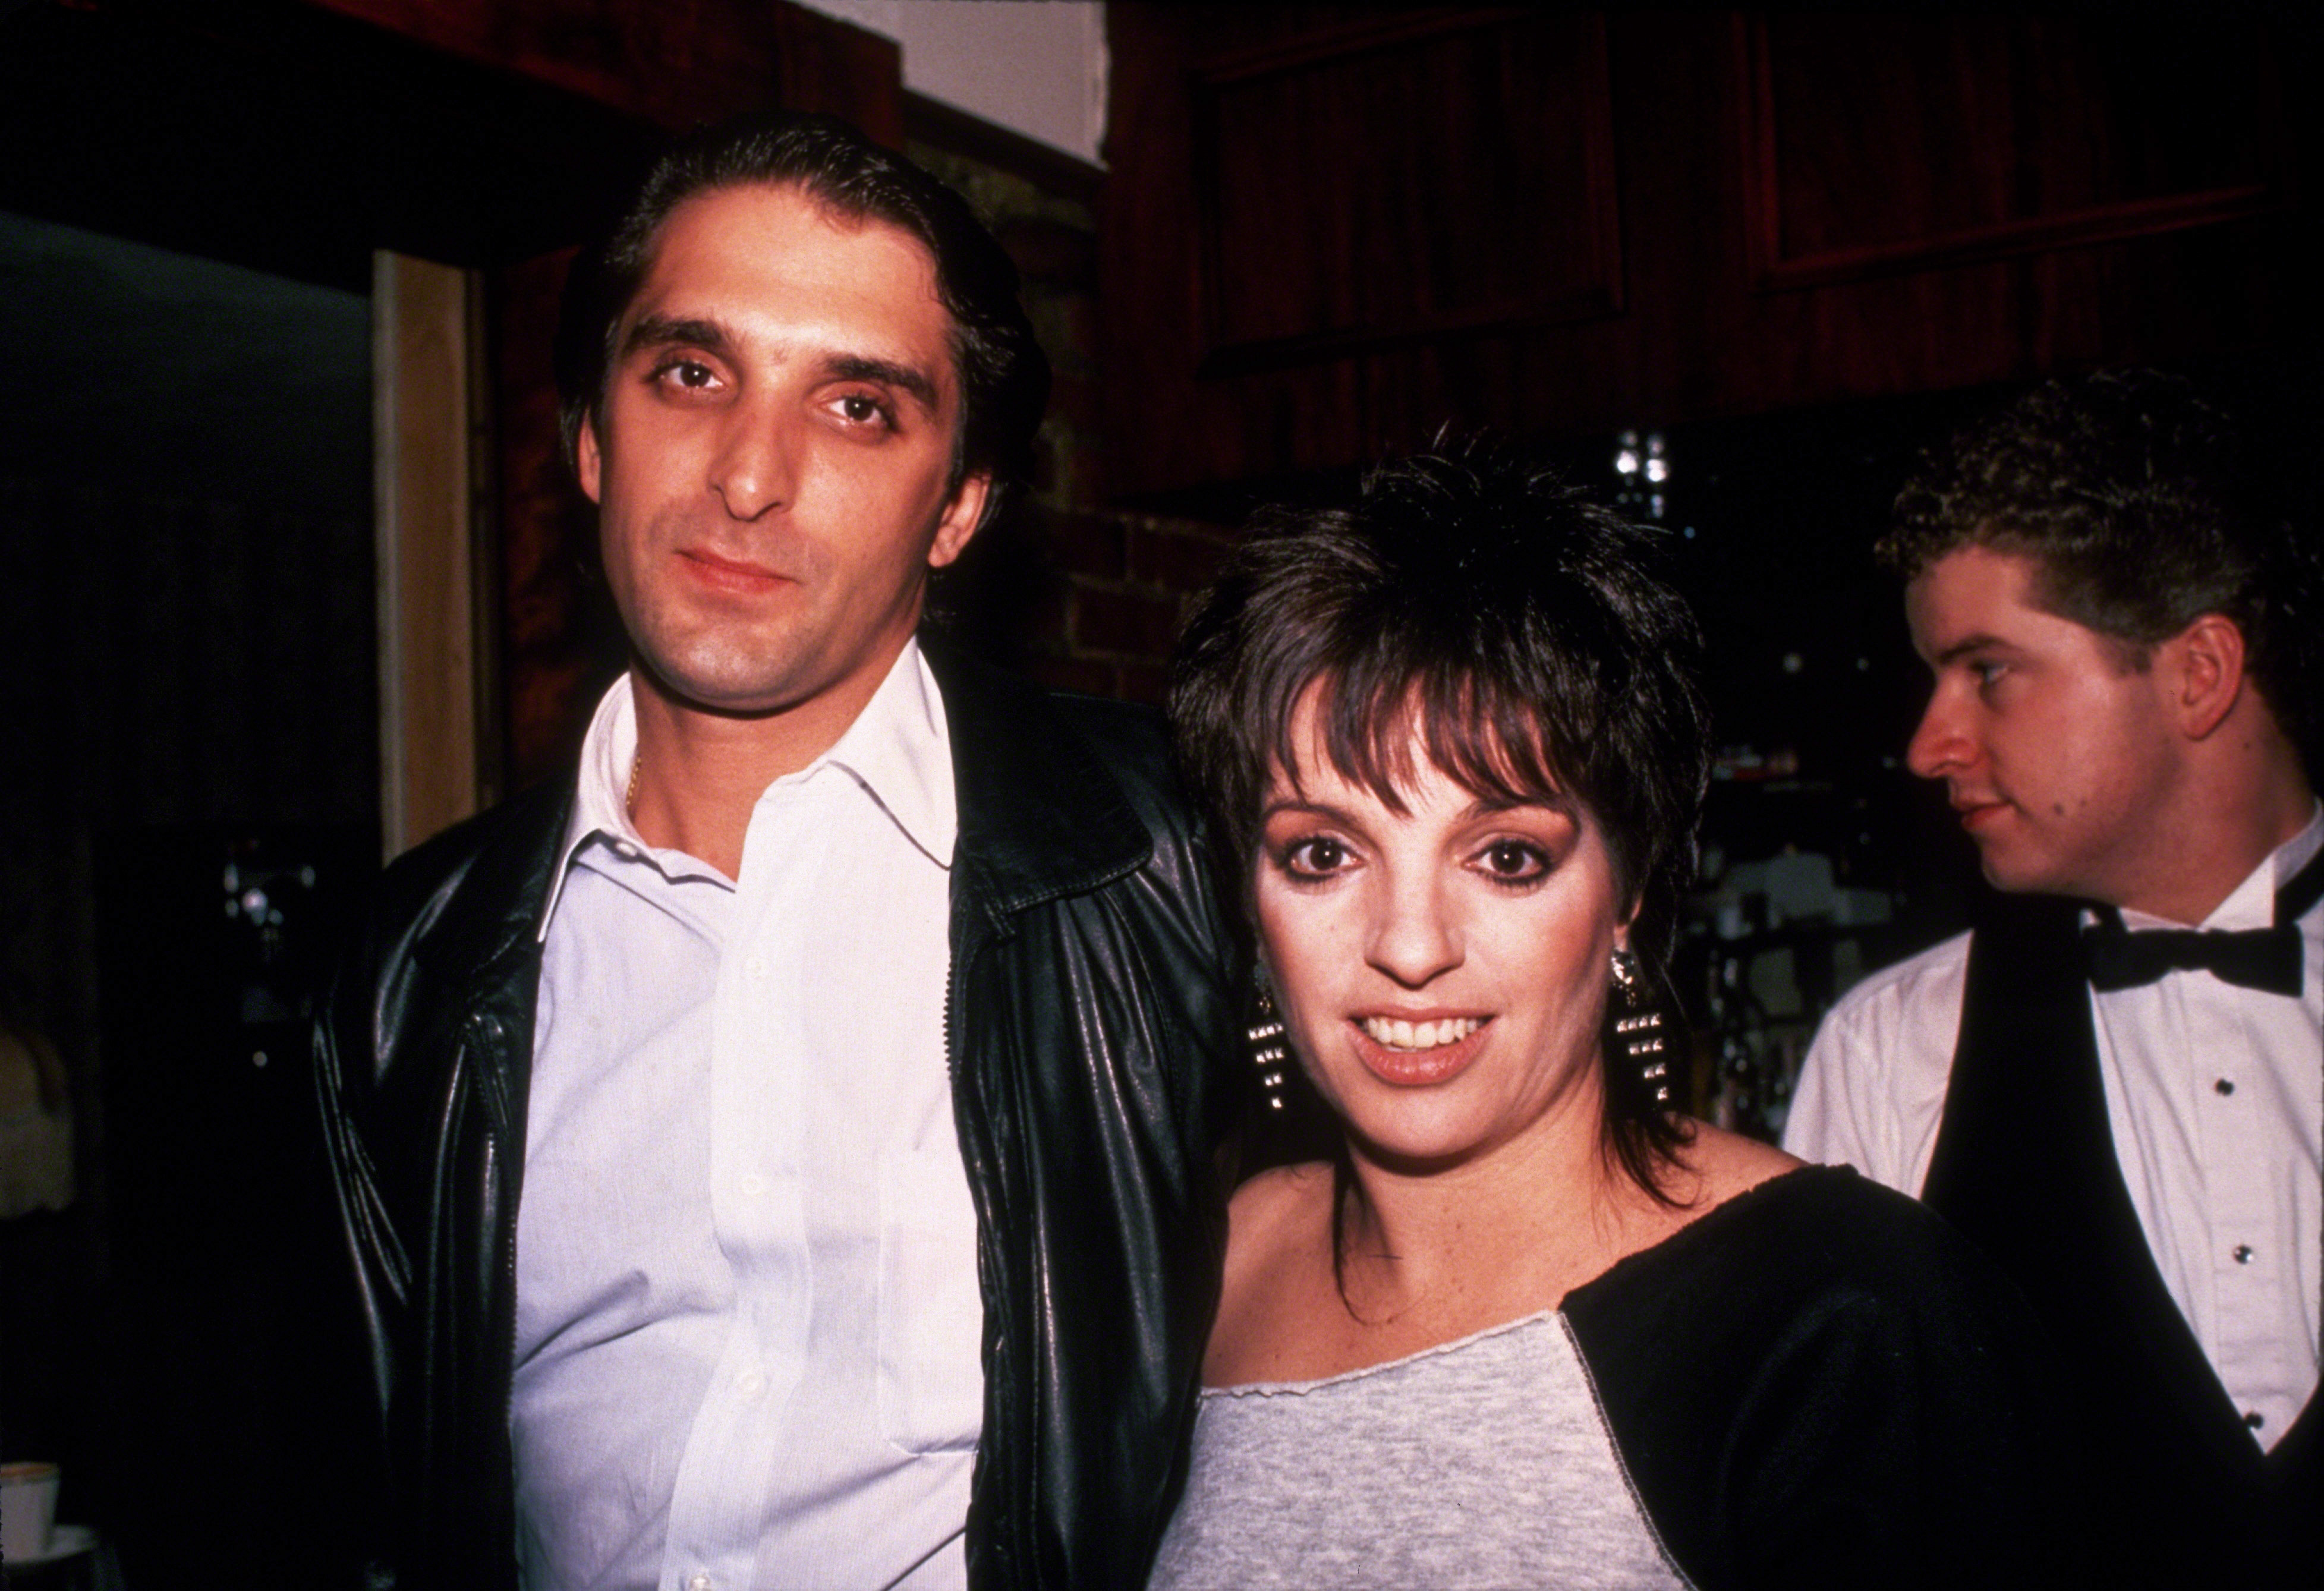 celebrity weddings year you were born liza minnelli mark gero